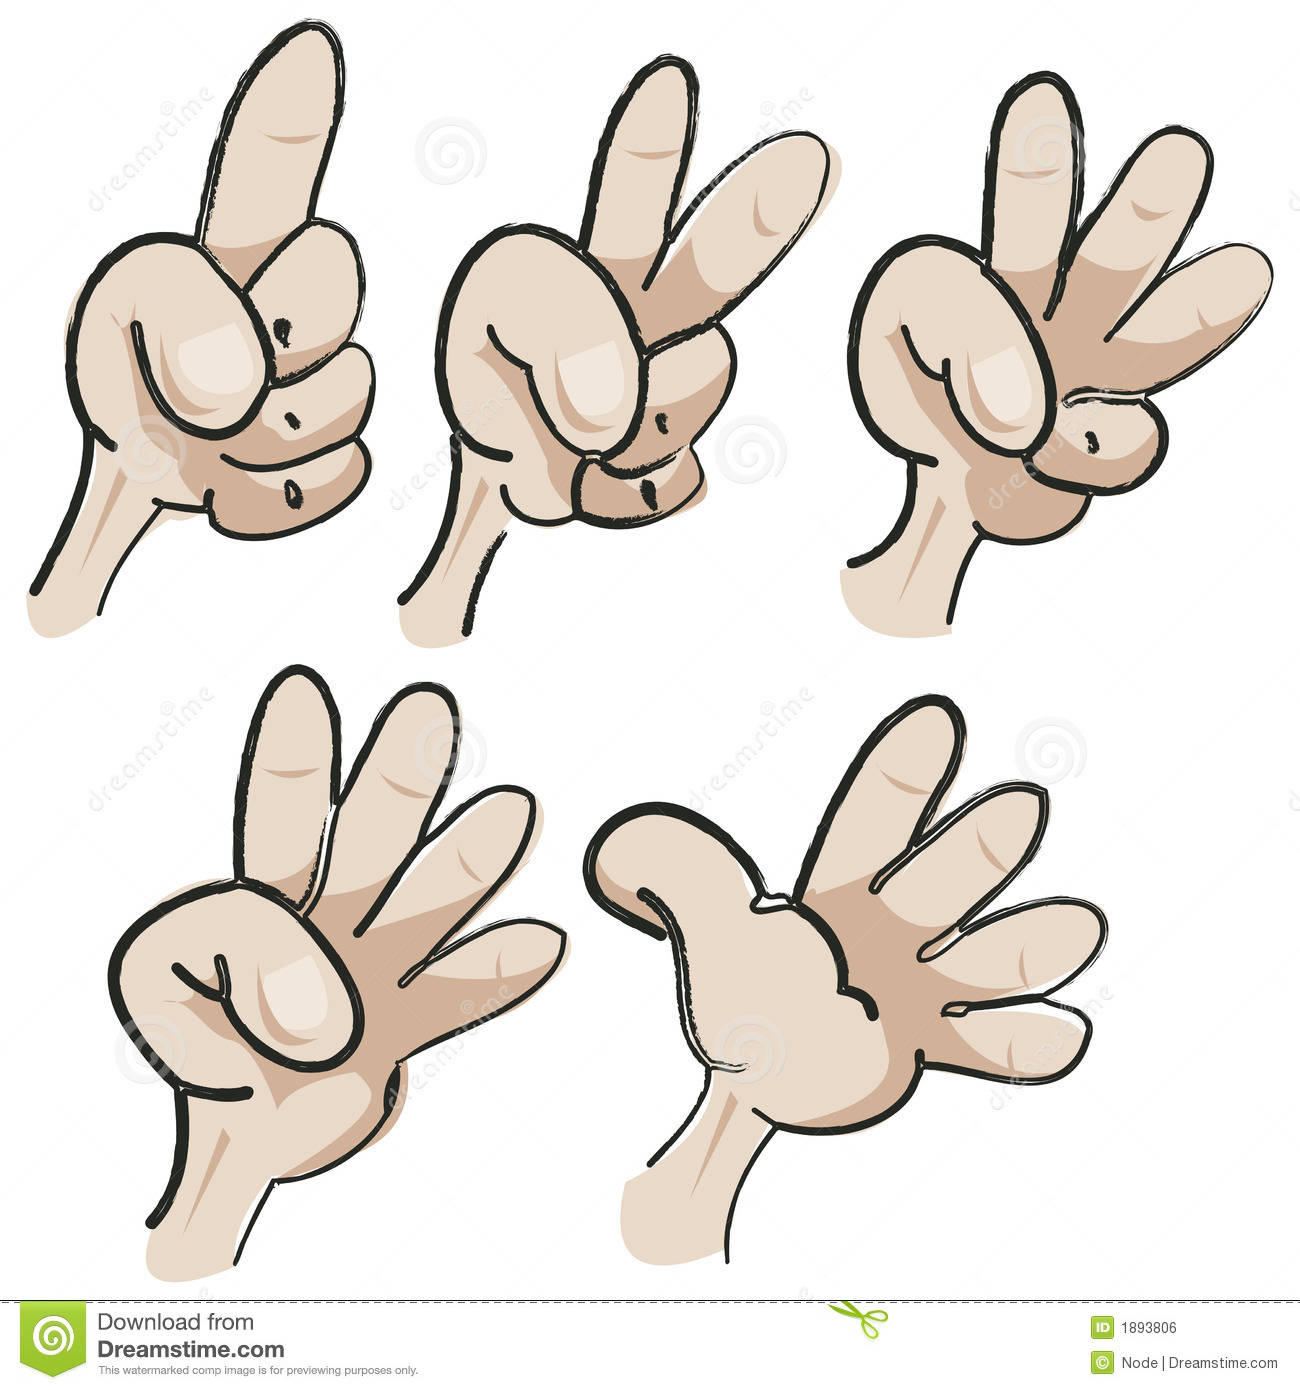 Illustration Of Five Hands Counting